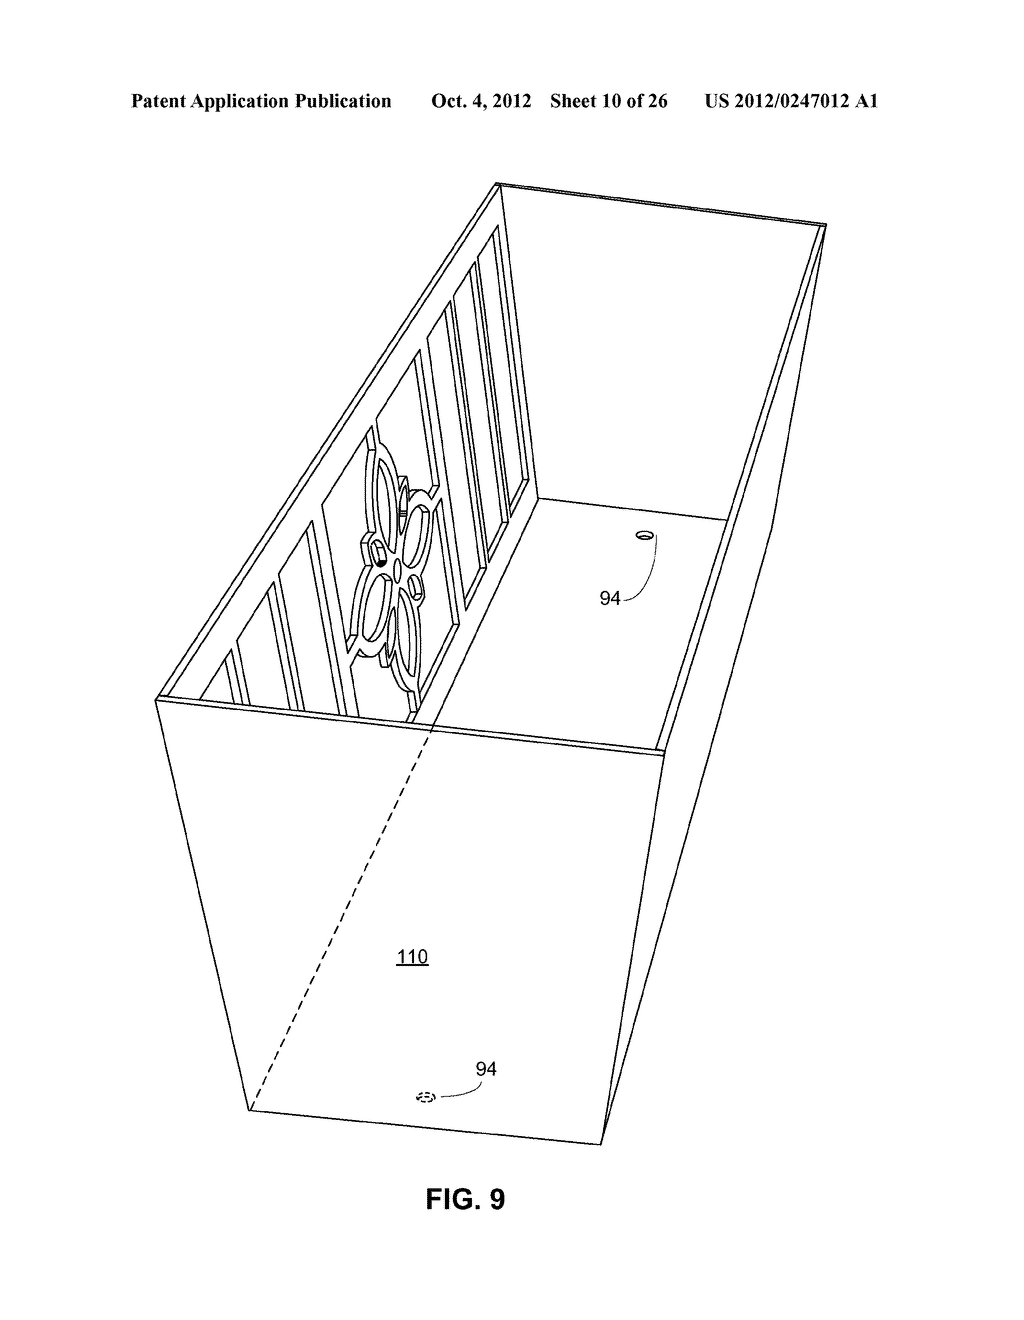 Breakaway Bracket For Use With Modular Tree Guard - diagram, schematic, and image 11